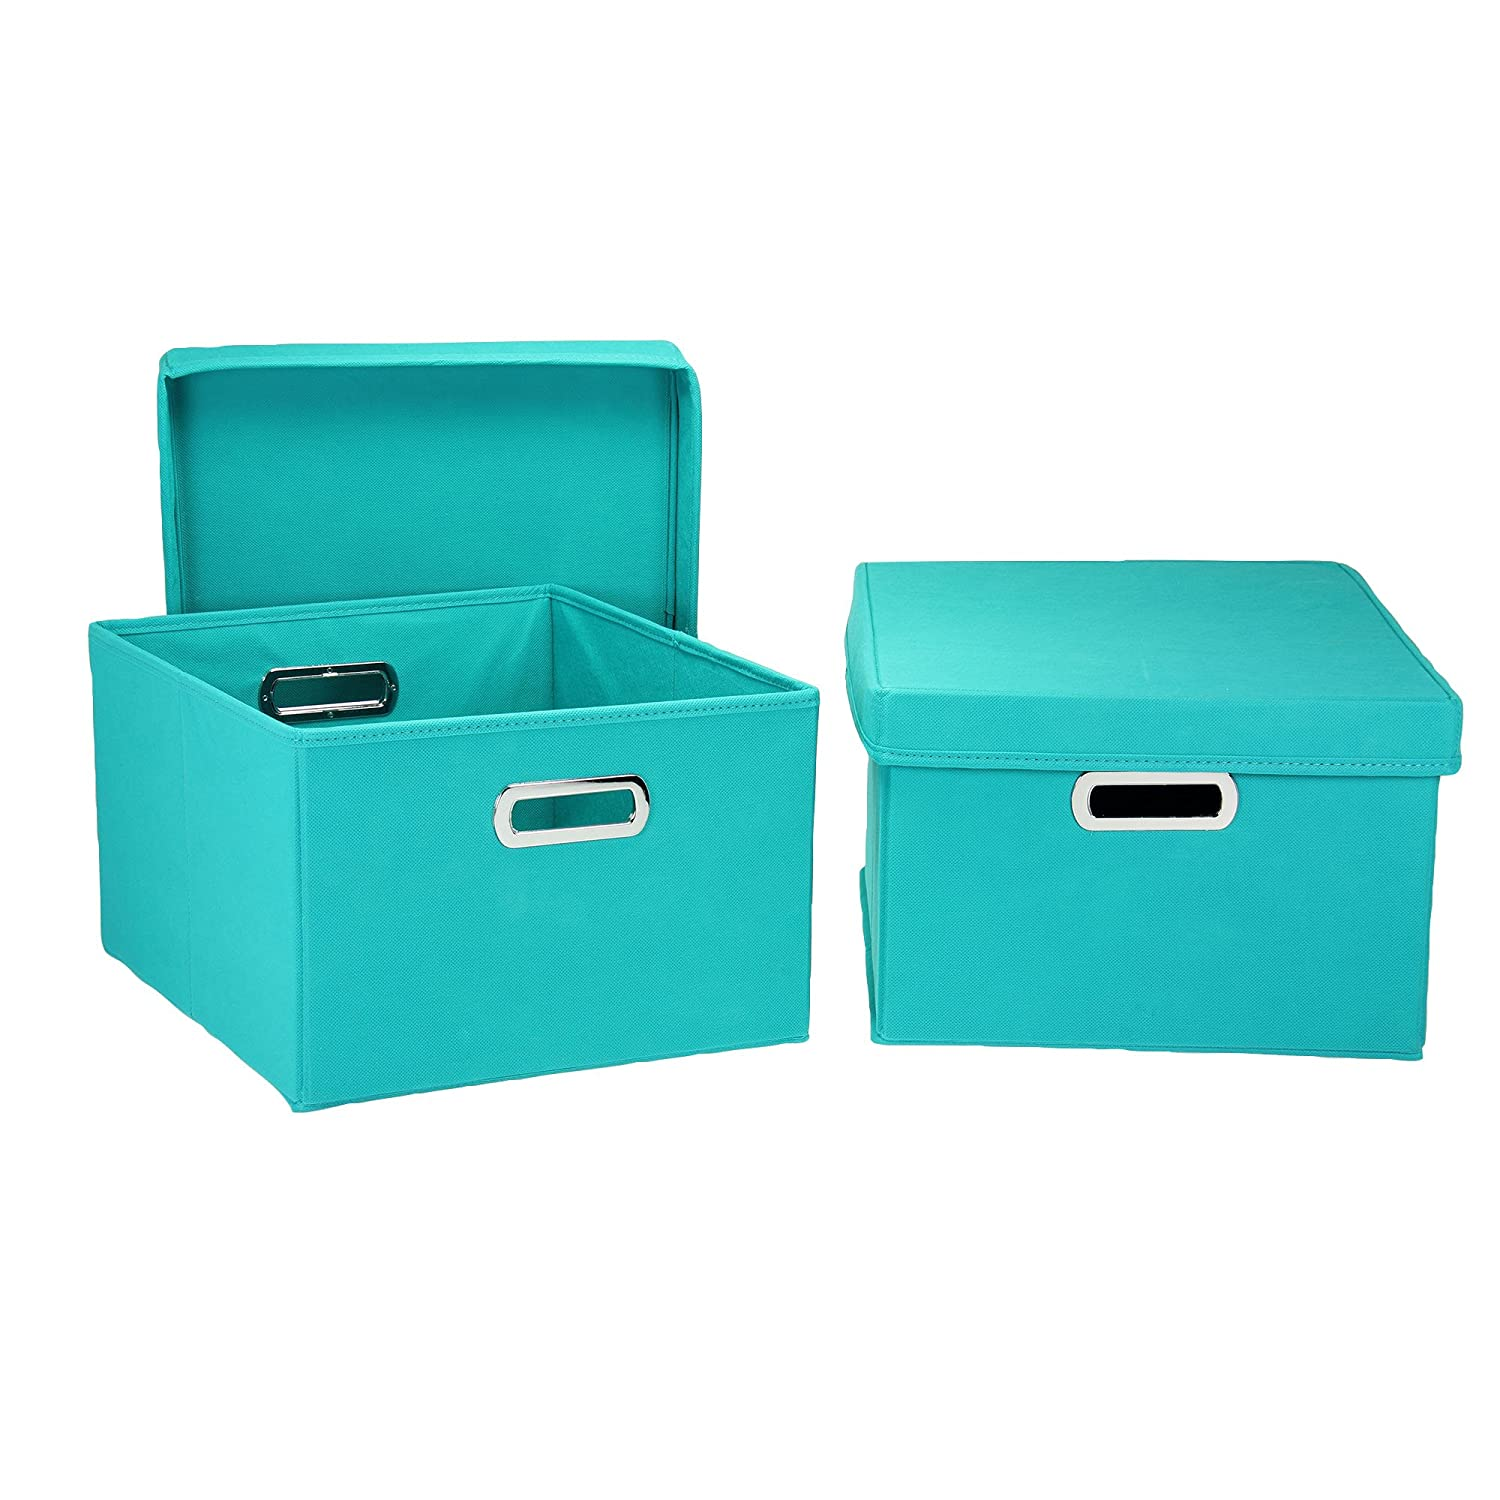 Charmant Amazon.com: Household Essentials Fabric Storage Boxes With Lids And  Handles: Home U0026 Kitchen